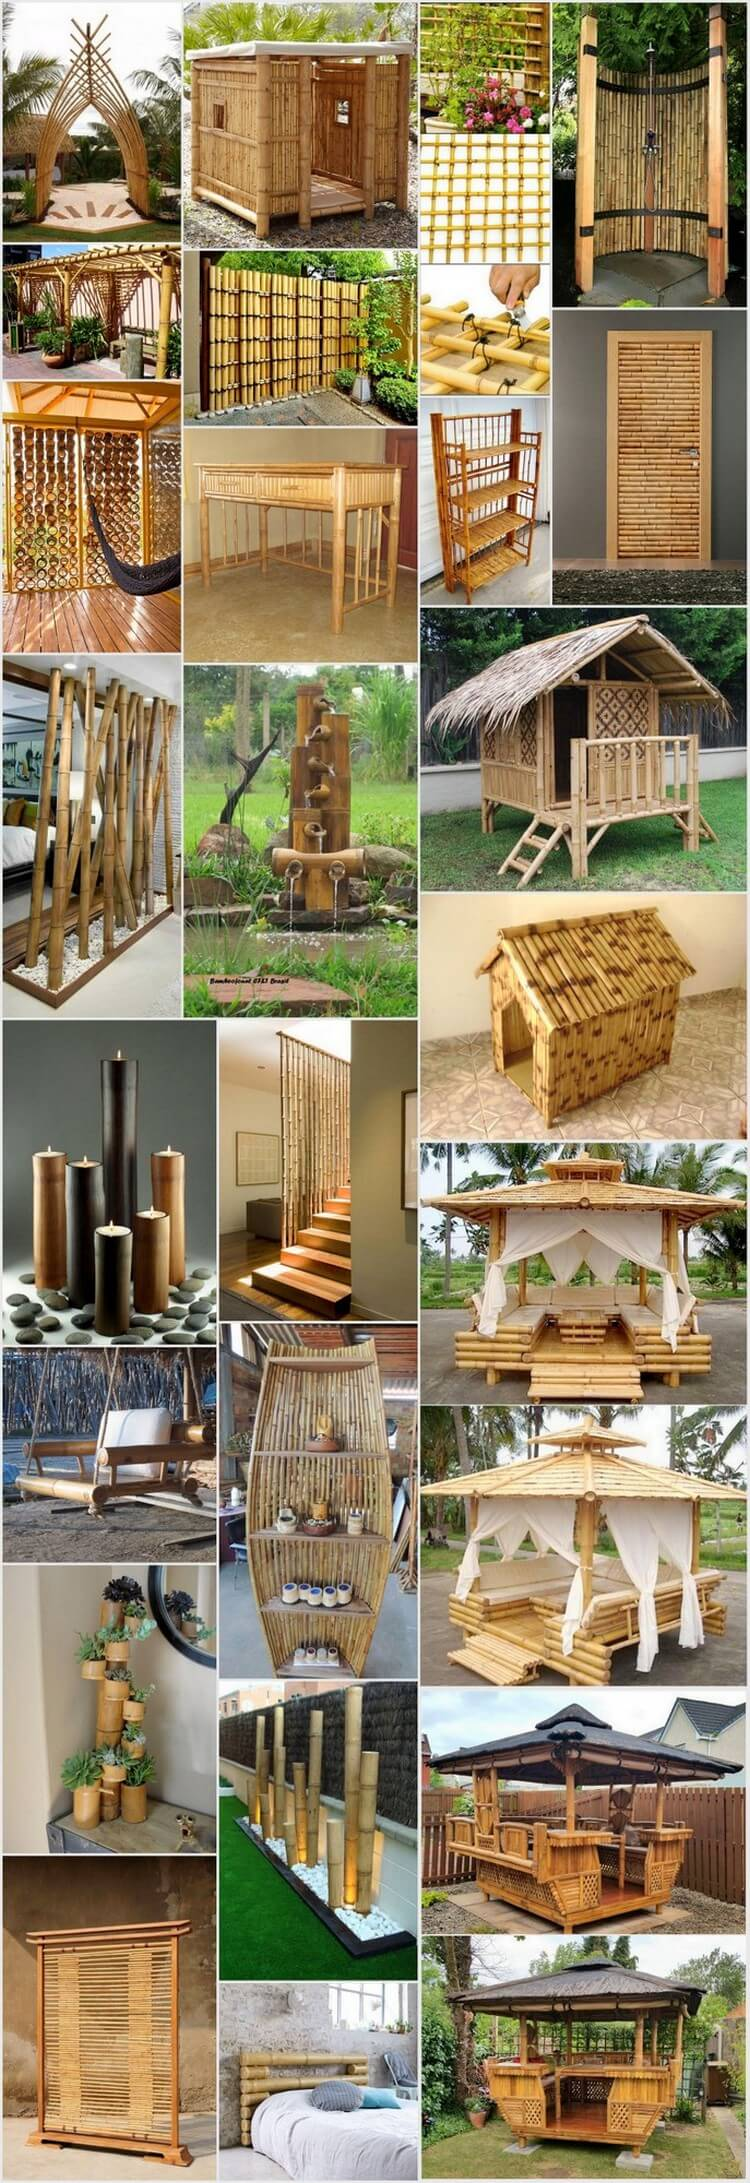 25 Amazing Ideas with Bamboo